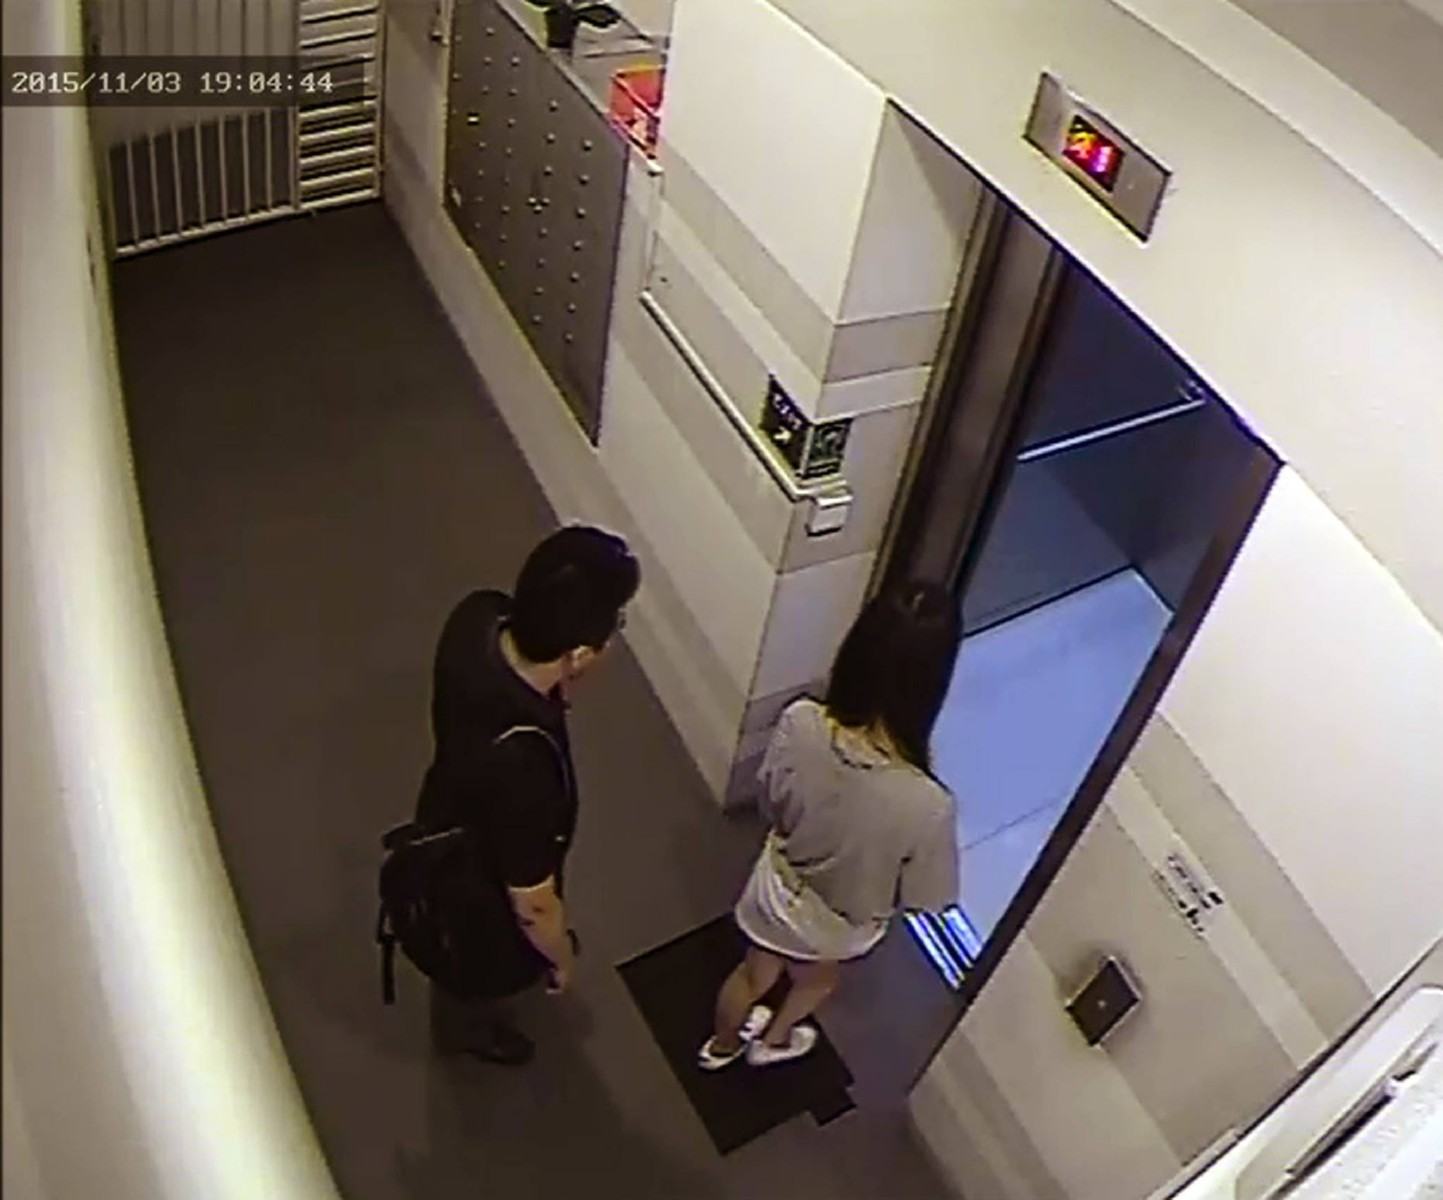 Woman alerts cops to alleged vice activities in condo